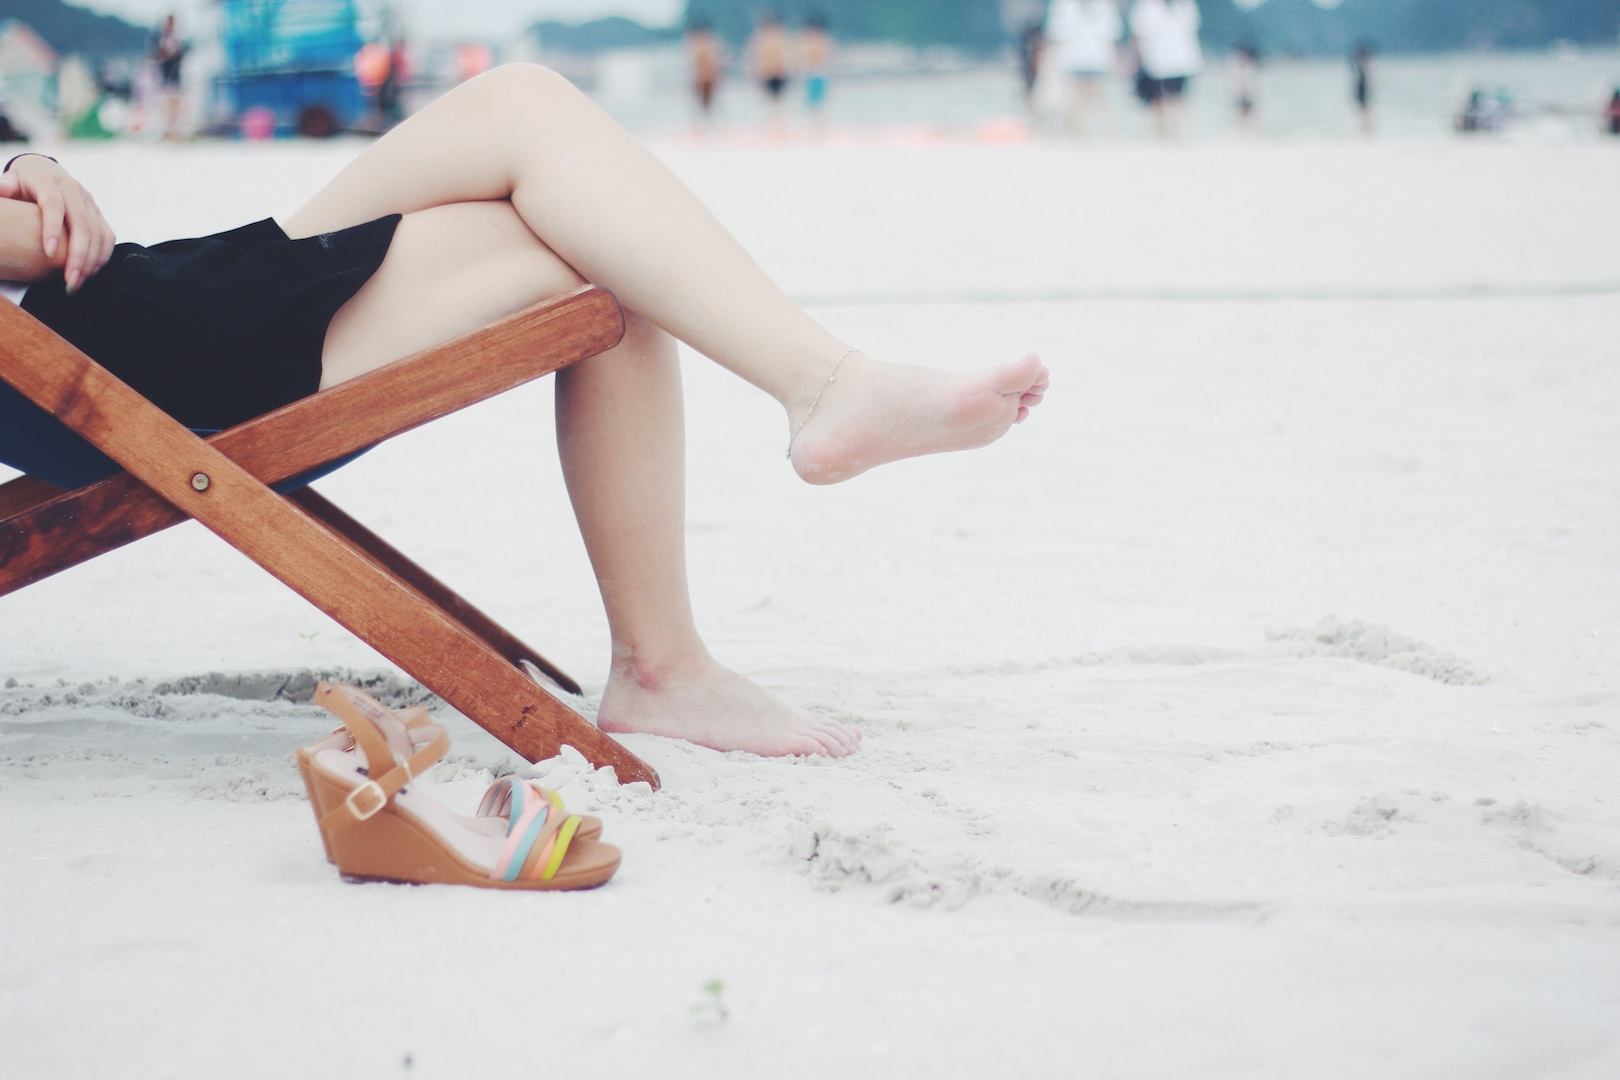 Woman in black dress sitting on a beach chair with her legs crossed